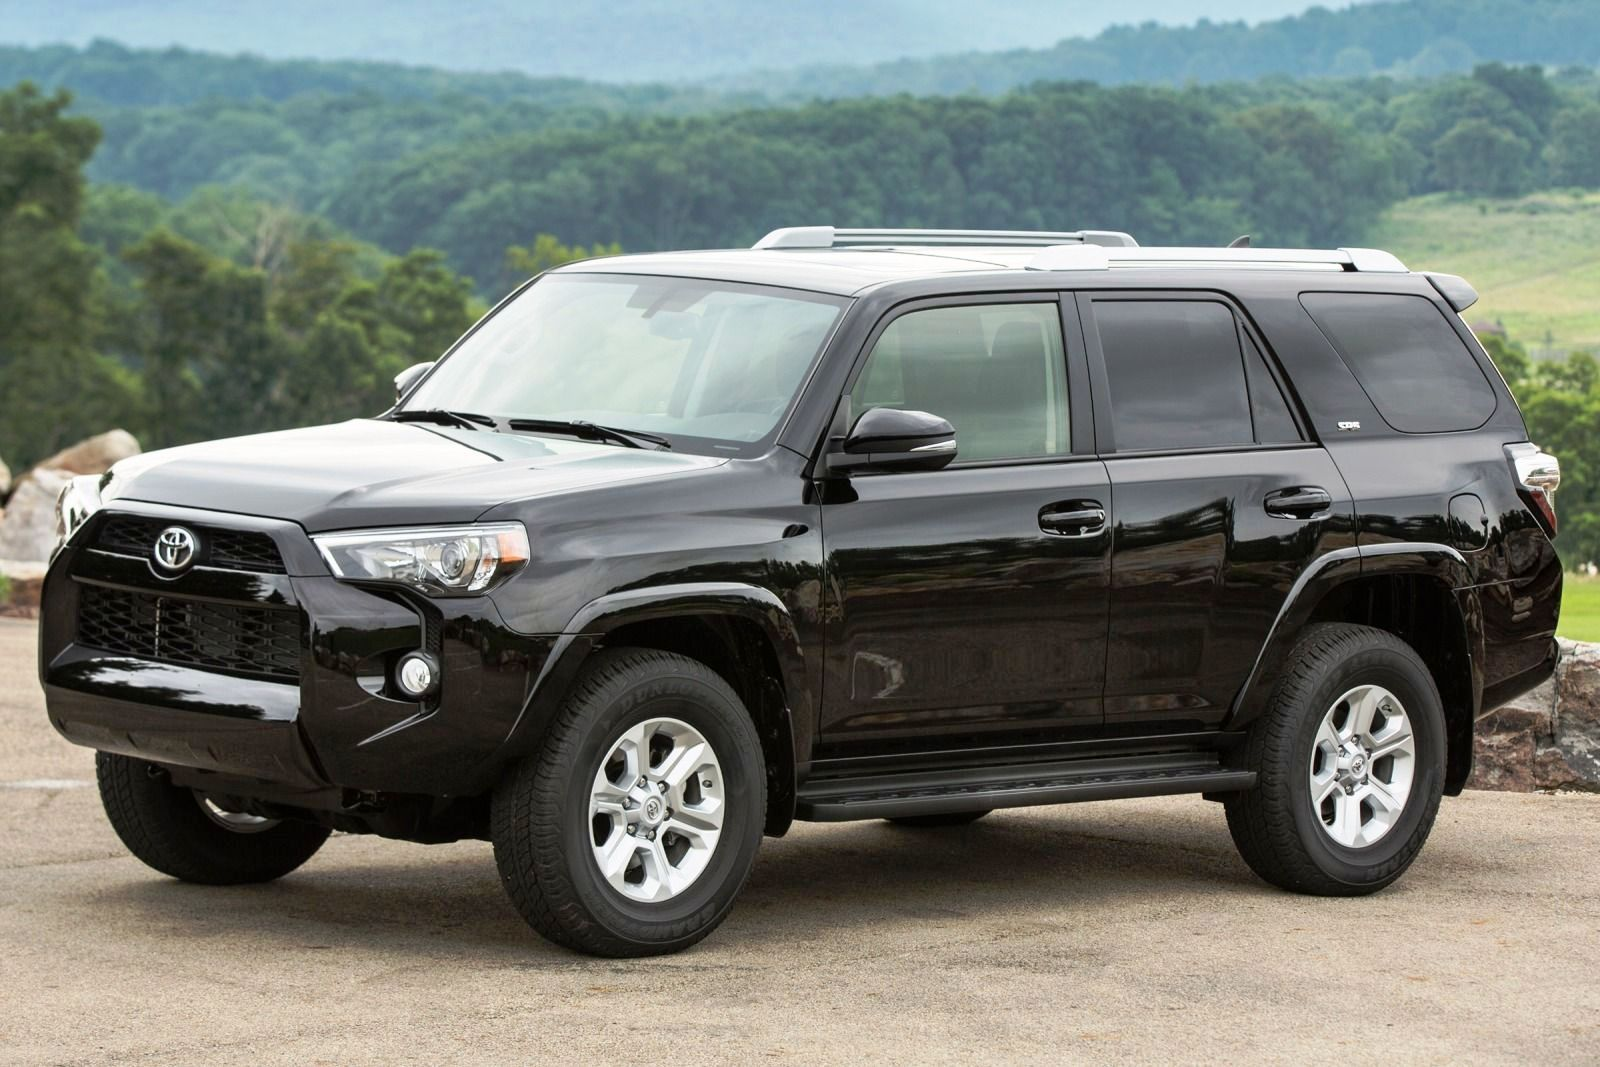 toyota 2016 new car suvs hd photo gallery wallpaper best suvs and crossovers pinterest suv. Black Bedroom Furniture Sets. Home Design Ideas